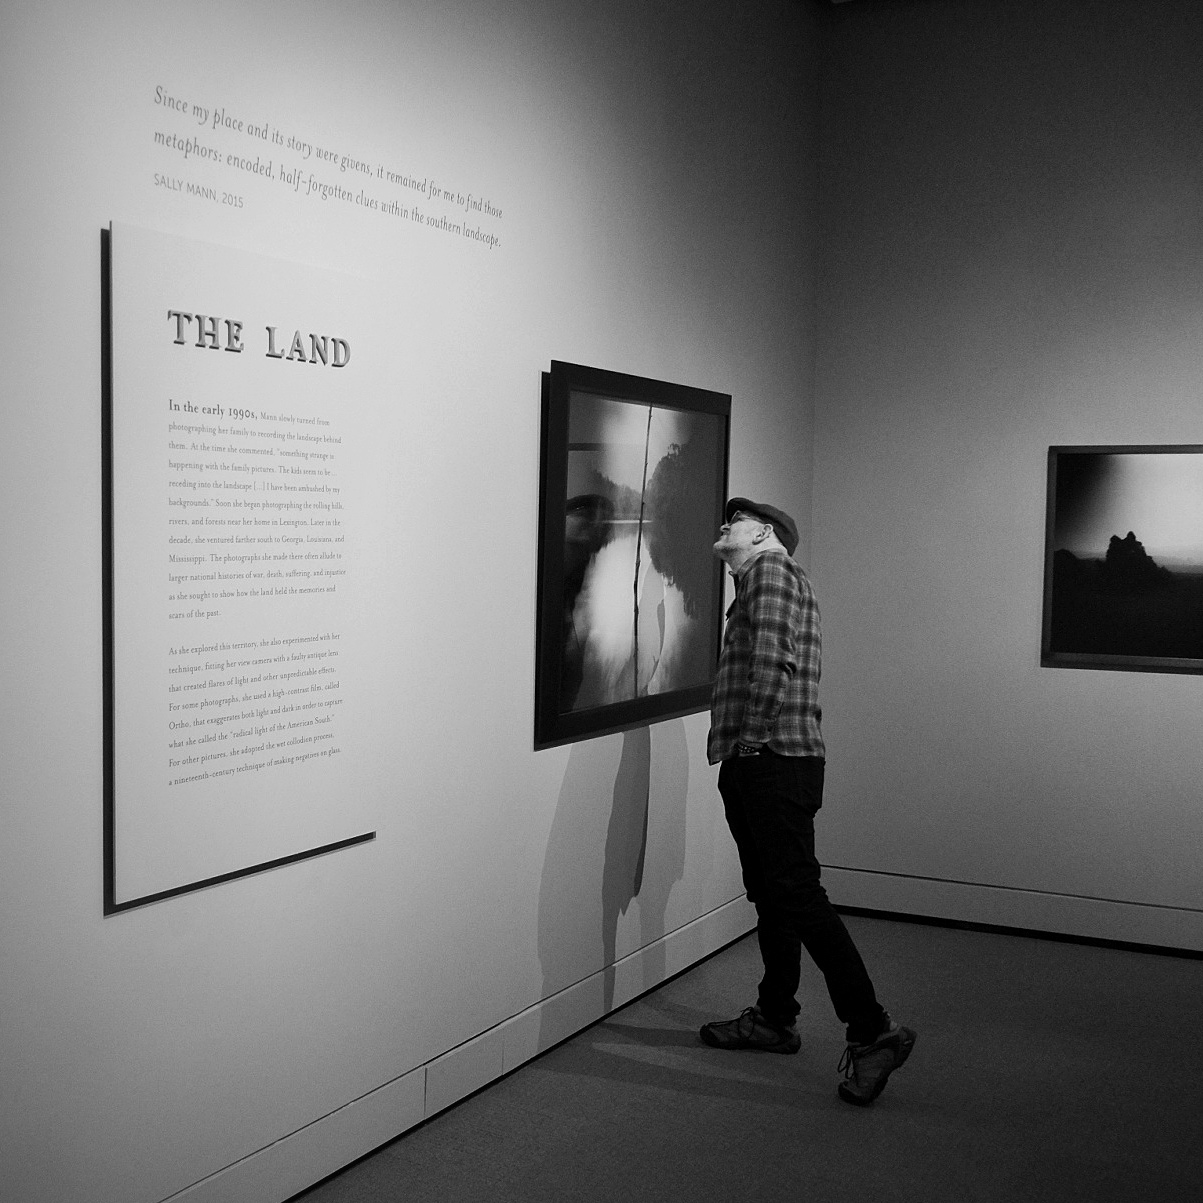 The Land: Since my my place and its story were givens, it remained for me to find those metaphors: encoded, half-forgotten clues within the southern landscape — Sally Mann 2015